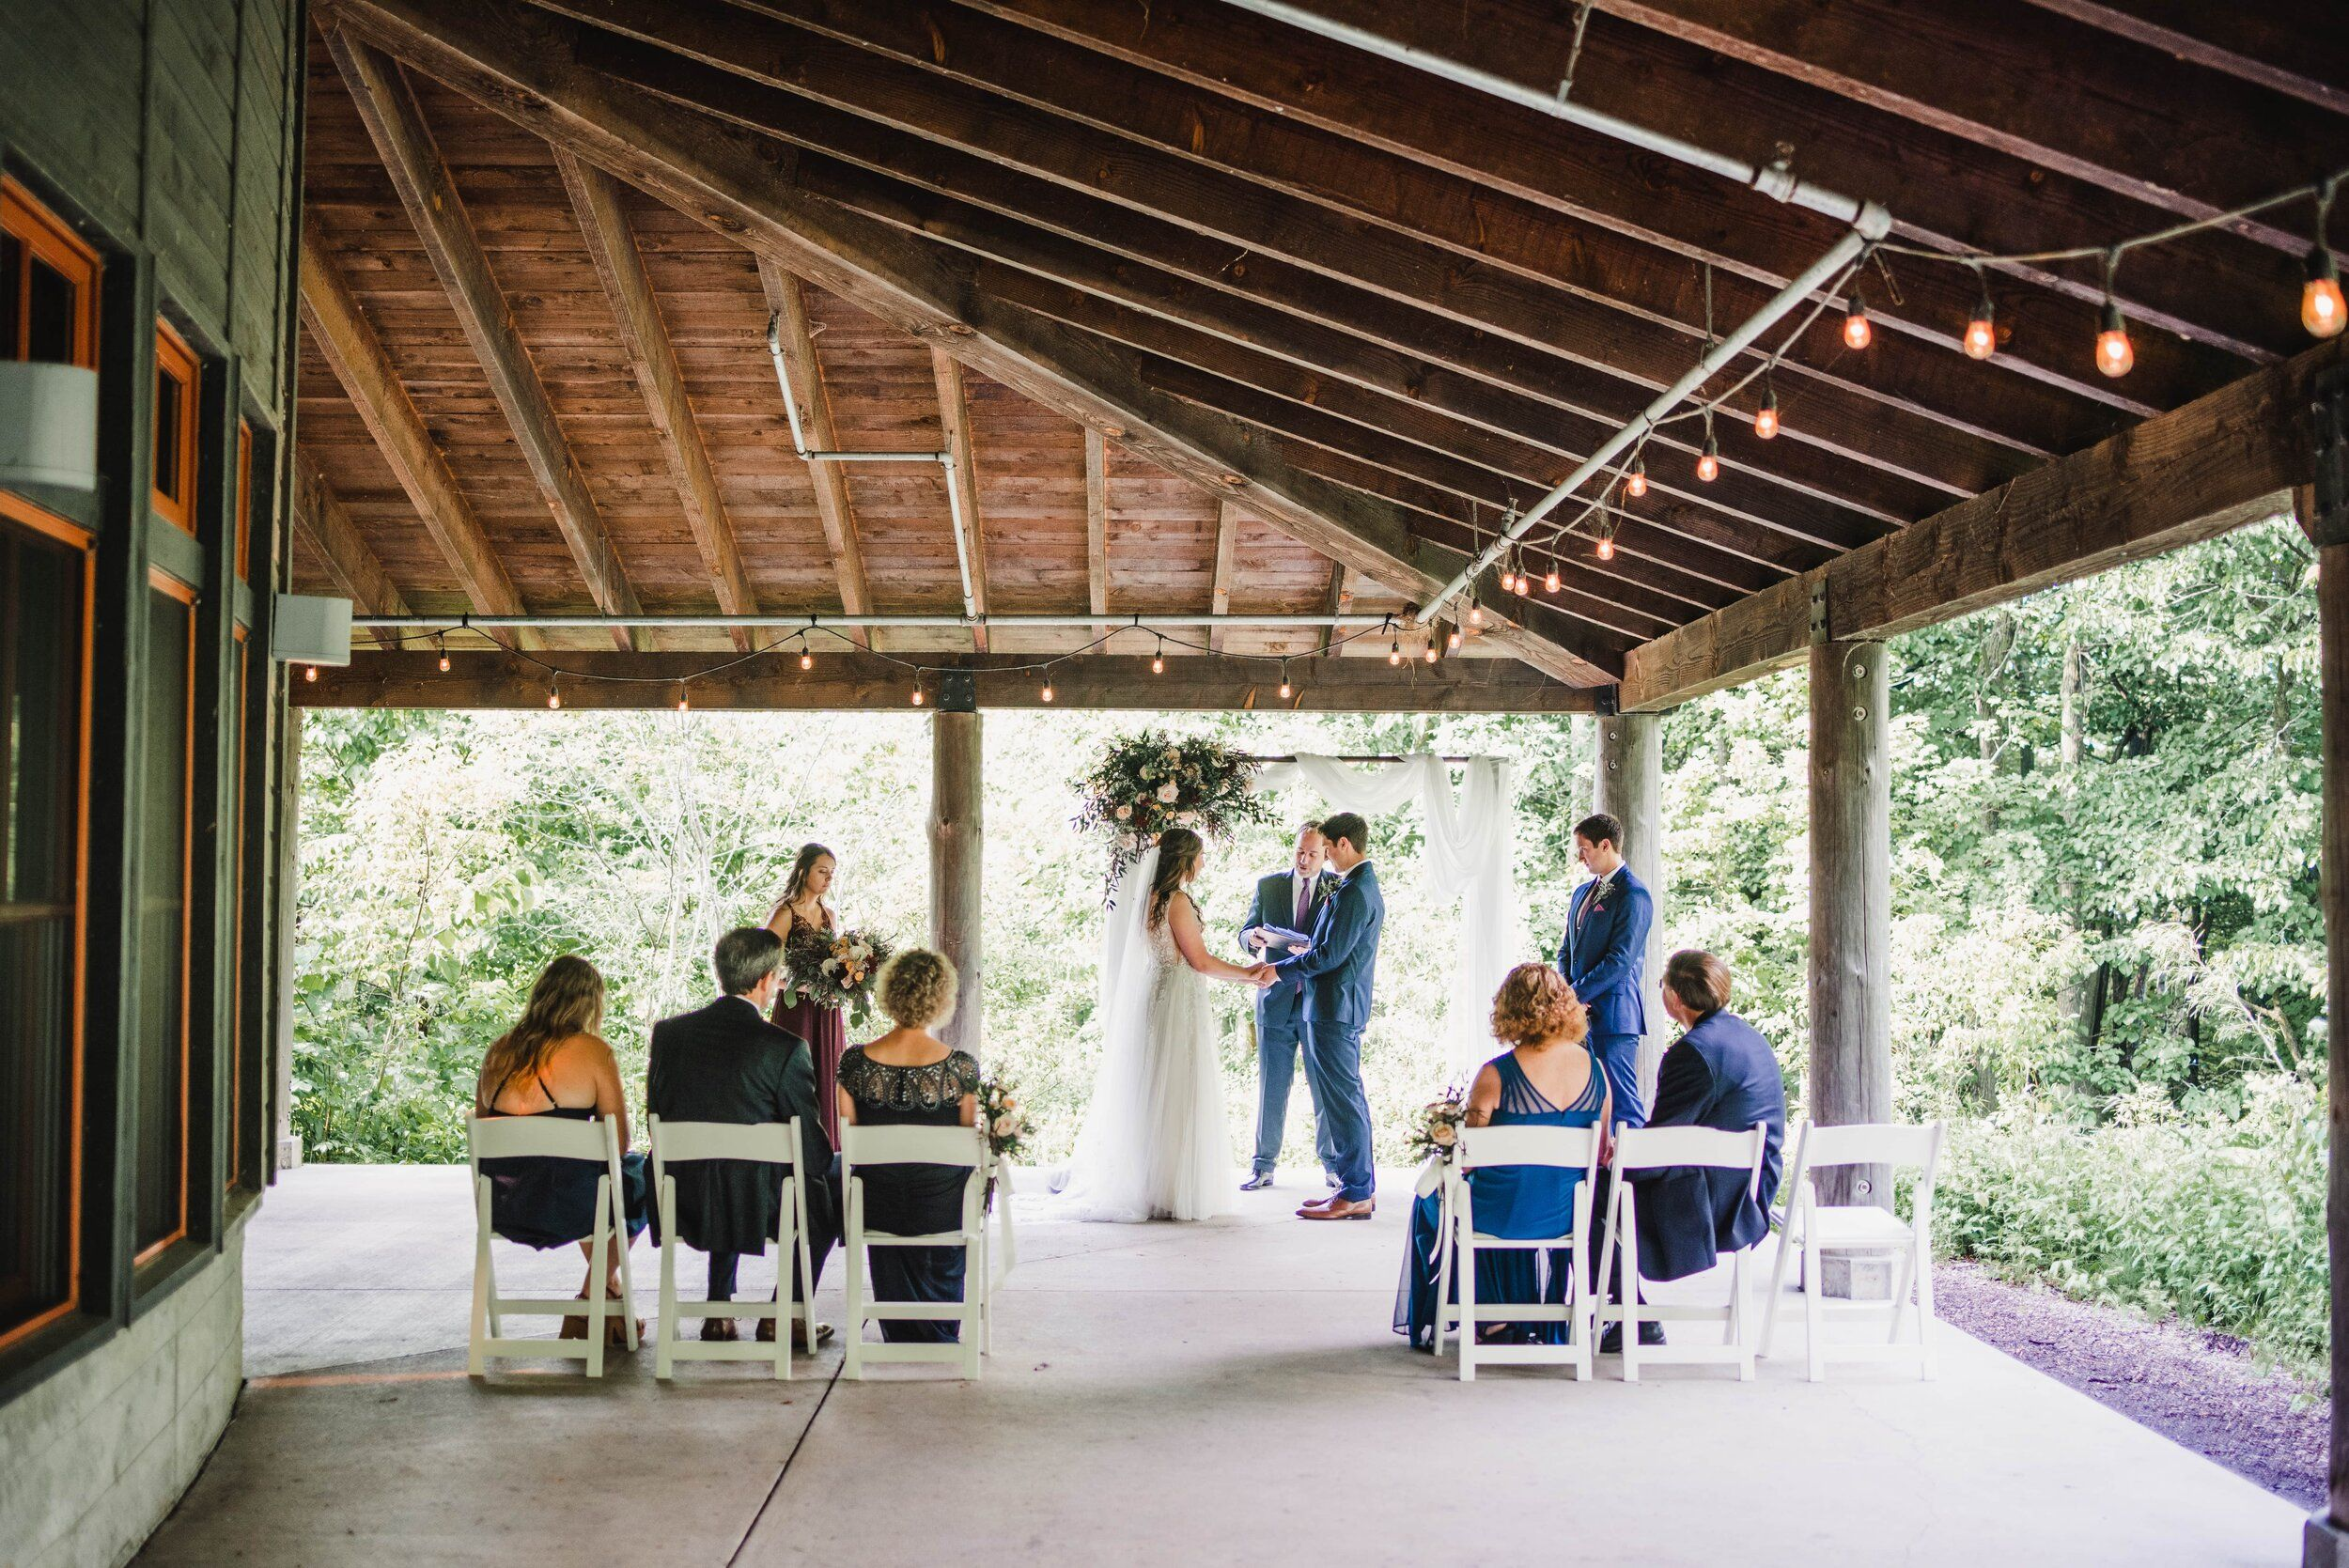 Paige and James at Schlitz Audubon in bayside,WI — La